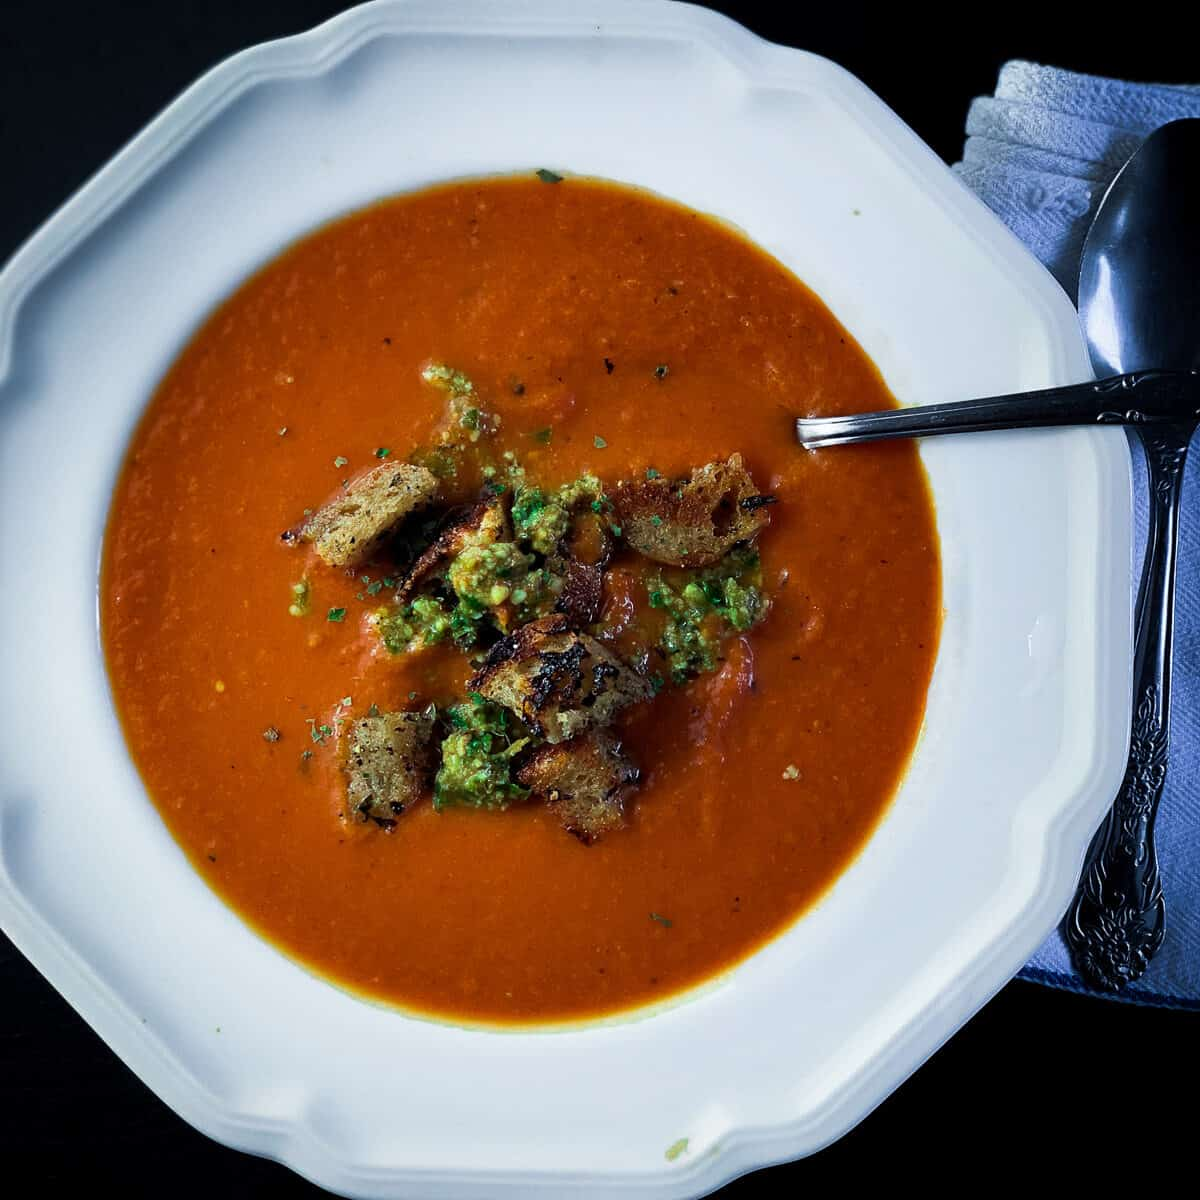 tomato soup with spoon in white bowl